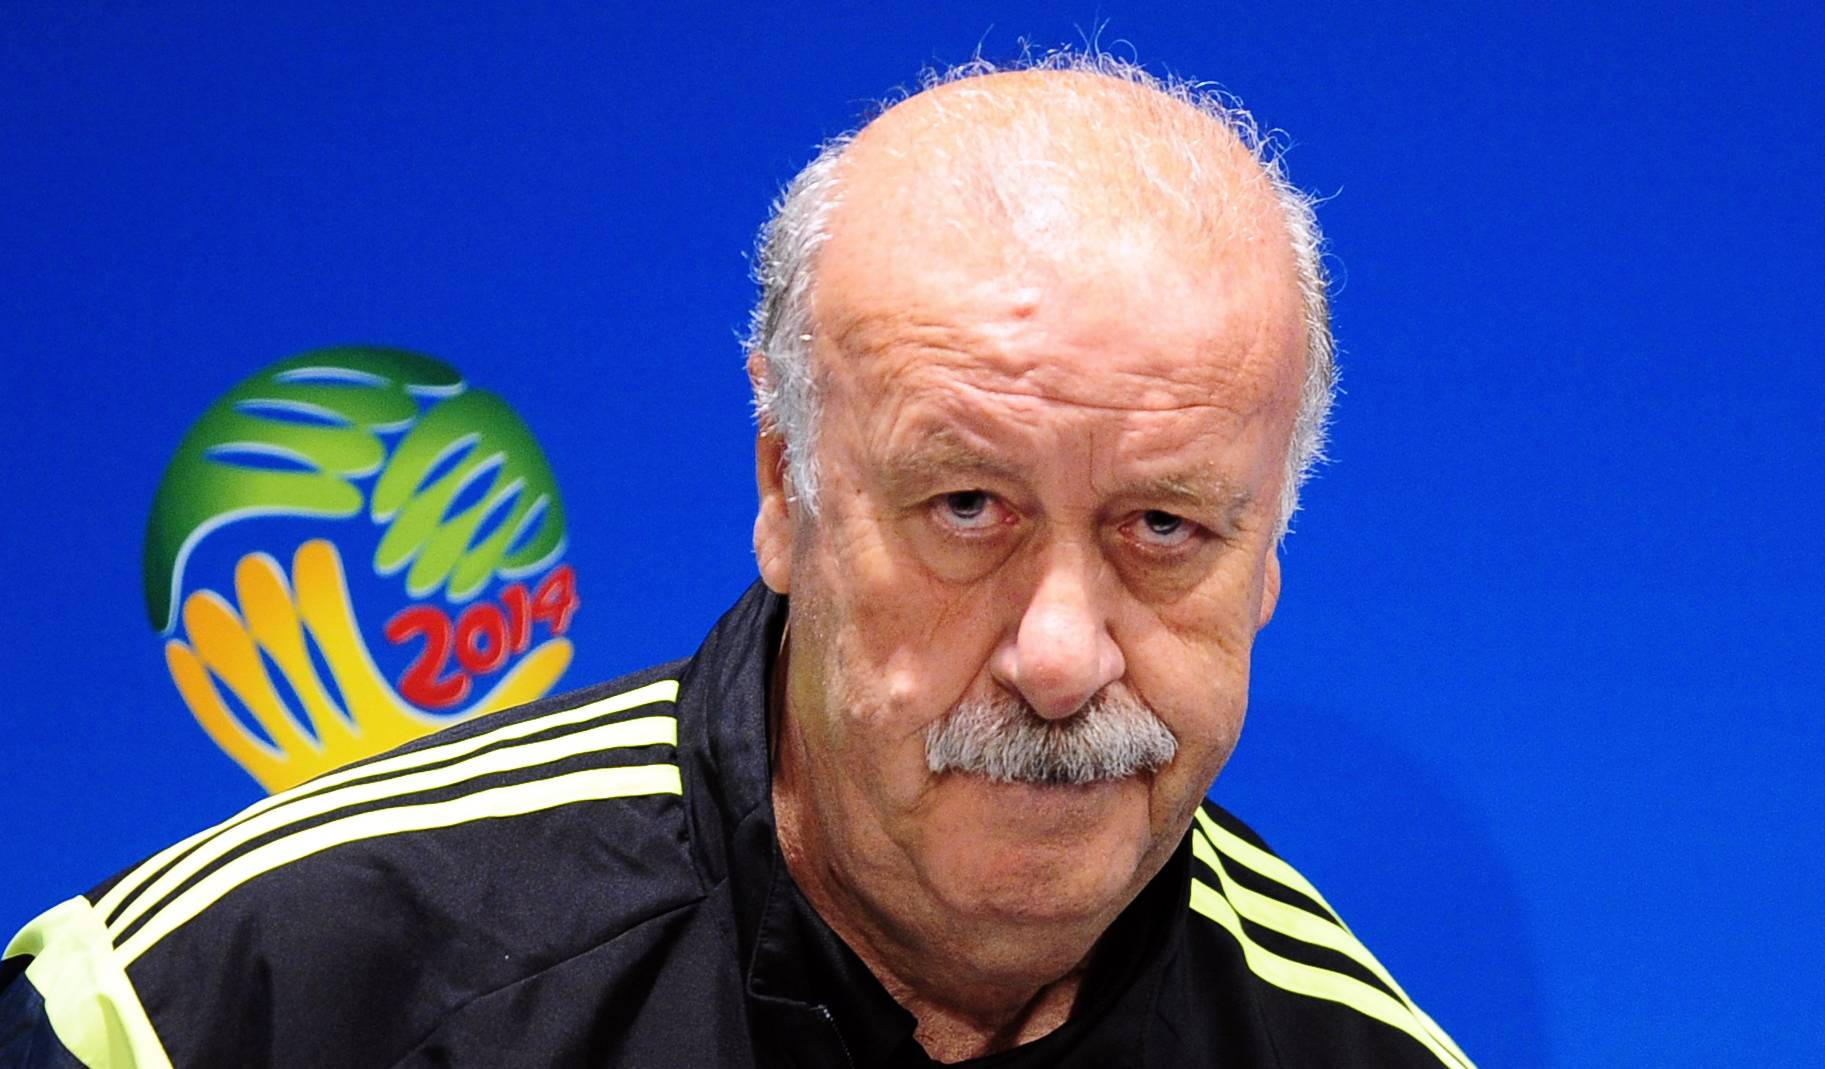 Spain's head coach Vicente del Bosque looks on during an official press conference the day before the group B World Cup soccer match between Spain and Chile at the Maracana stadium in Rio de Janeiro, Brazil, Tuesday, June 17, 2014. Spain will play in group B of the Brazil 2014 World Cup.